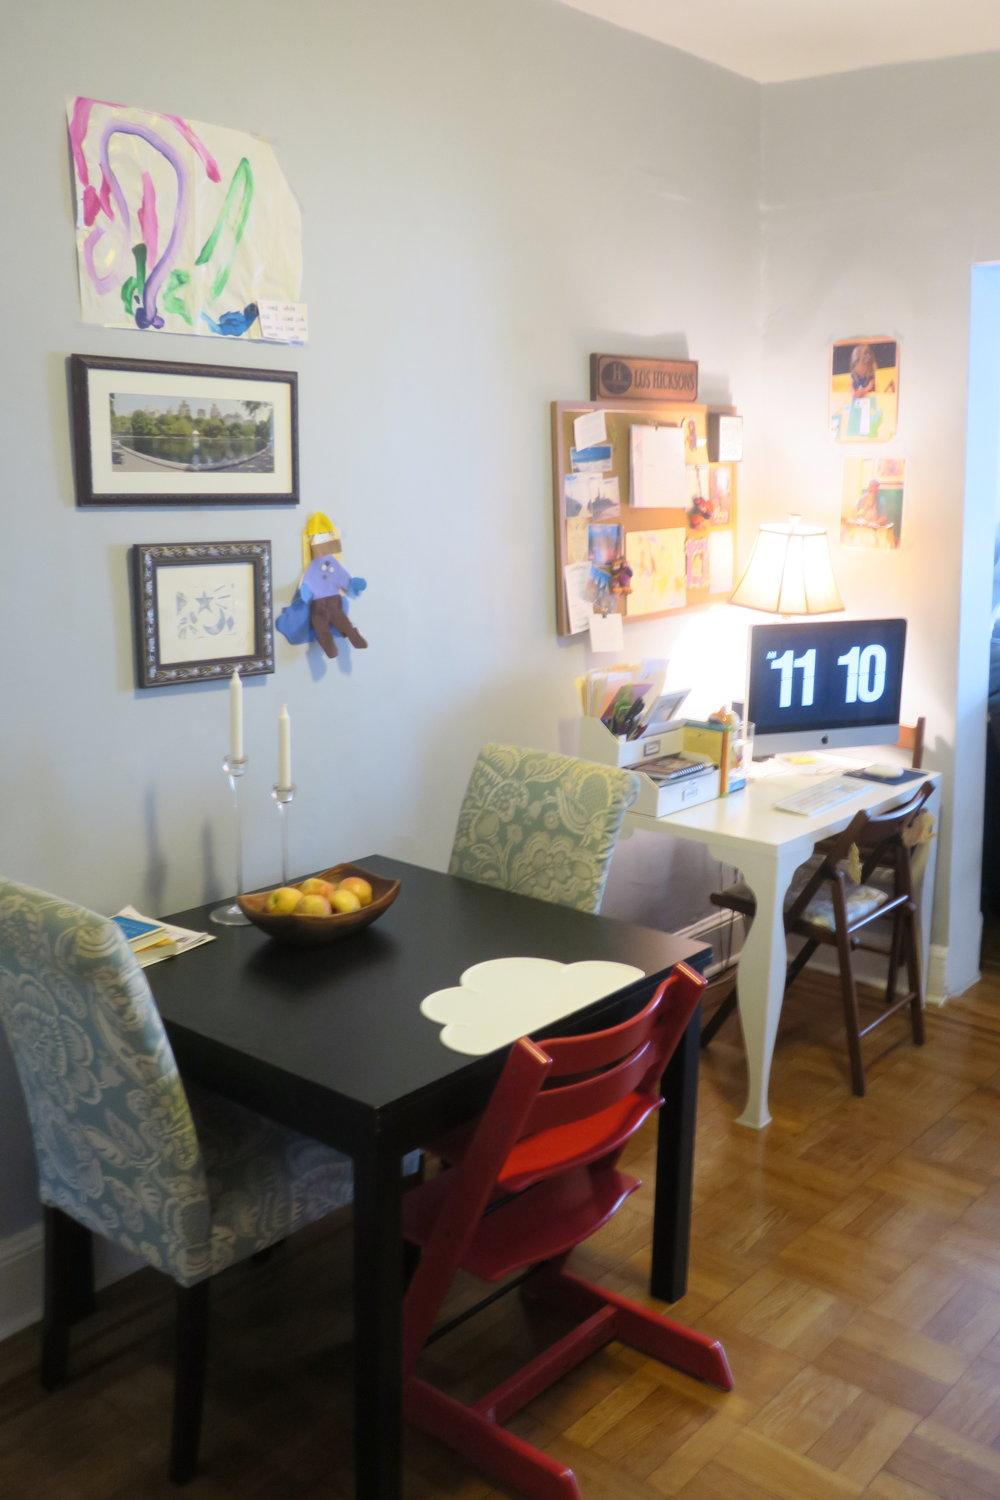 Across from her shelf/ play area is the dining room table and our desk space.